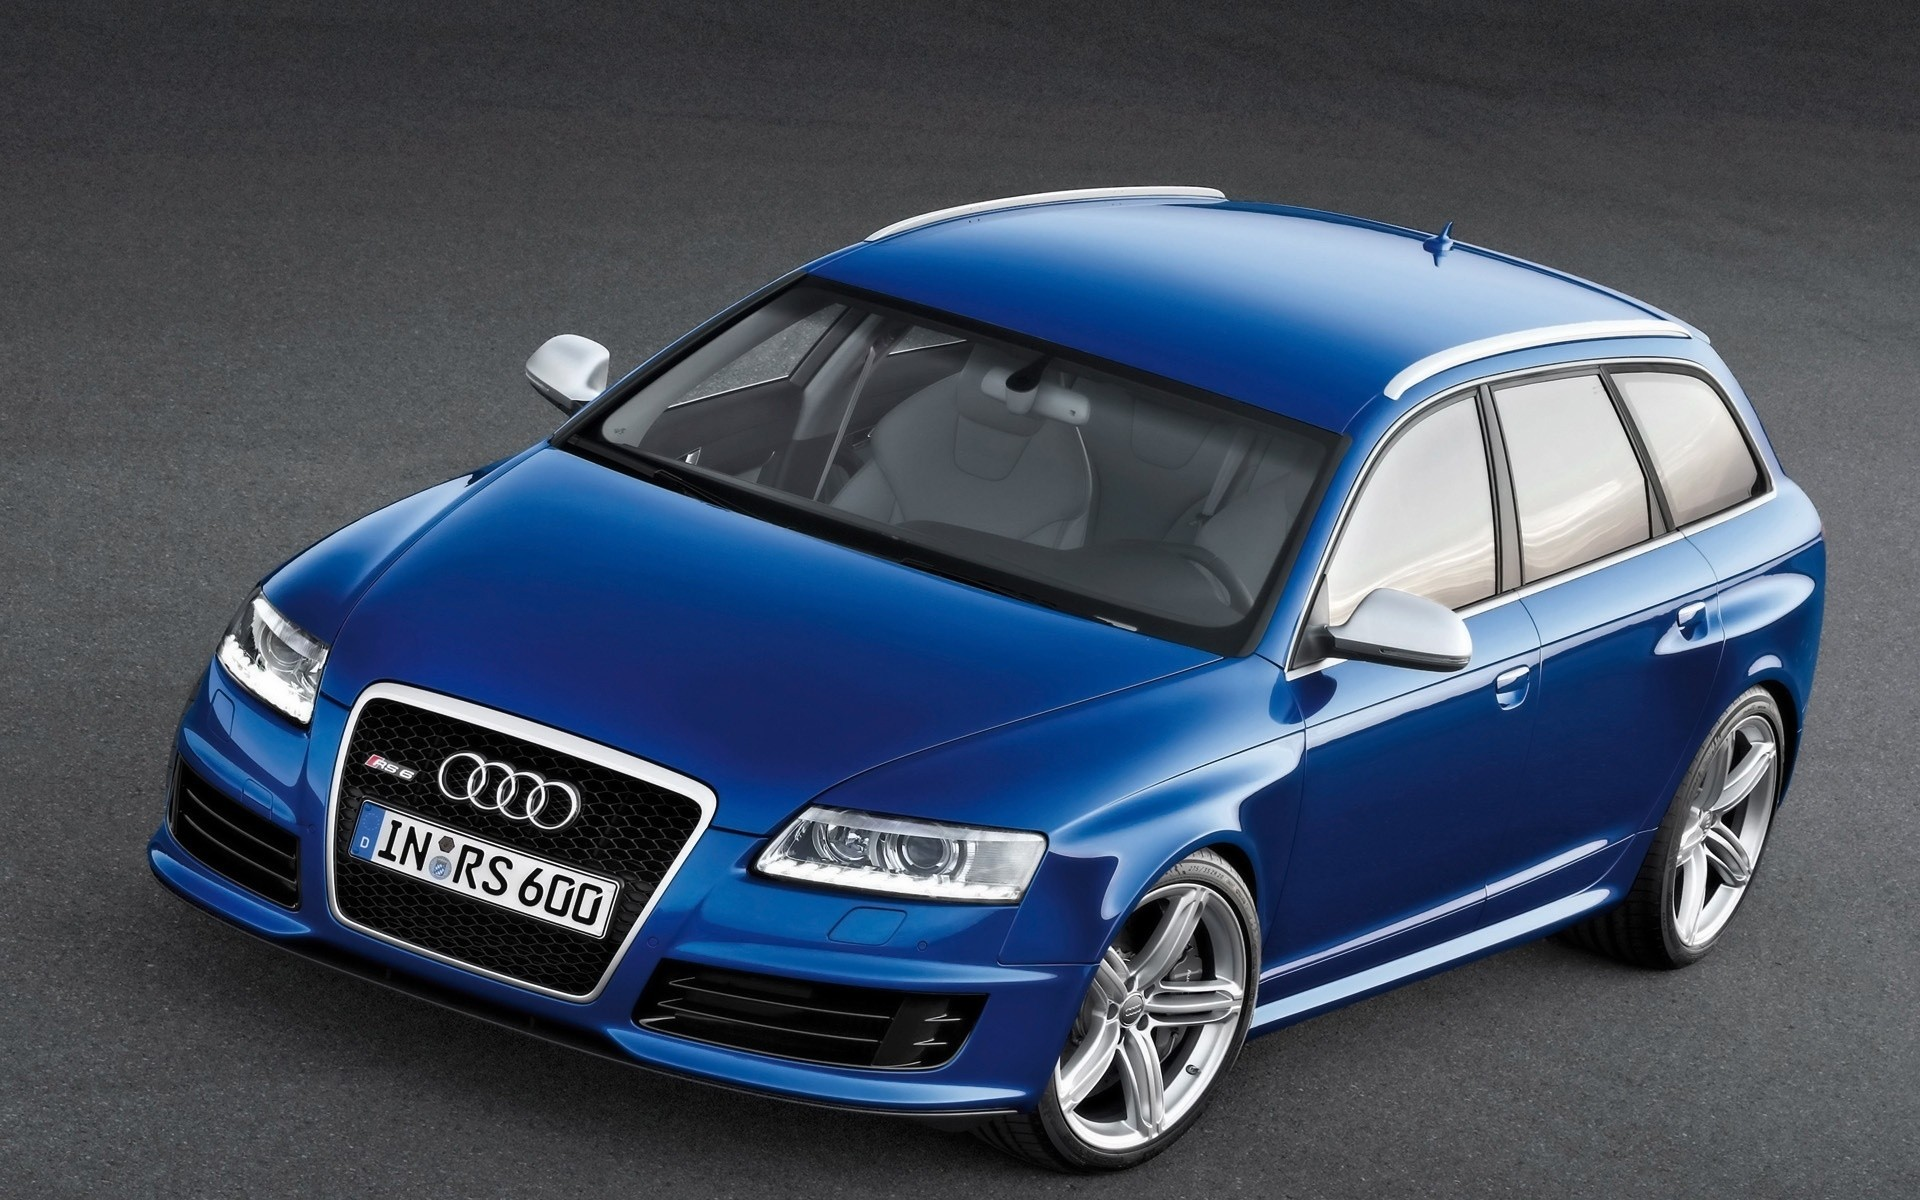 Audi RS6 Avant Front And Side 2008 IPhone Wallpapers For Free